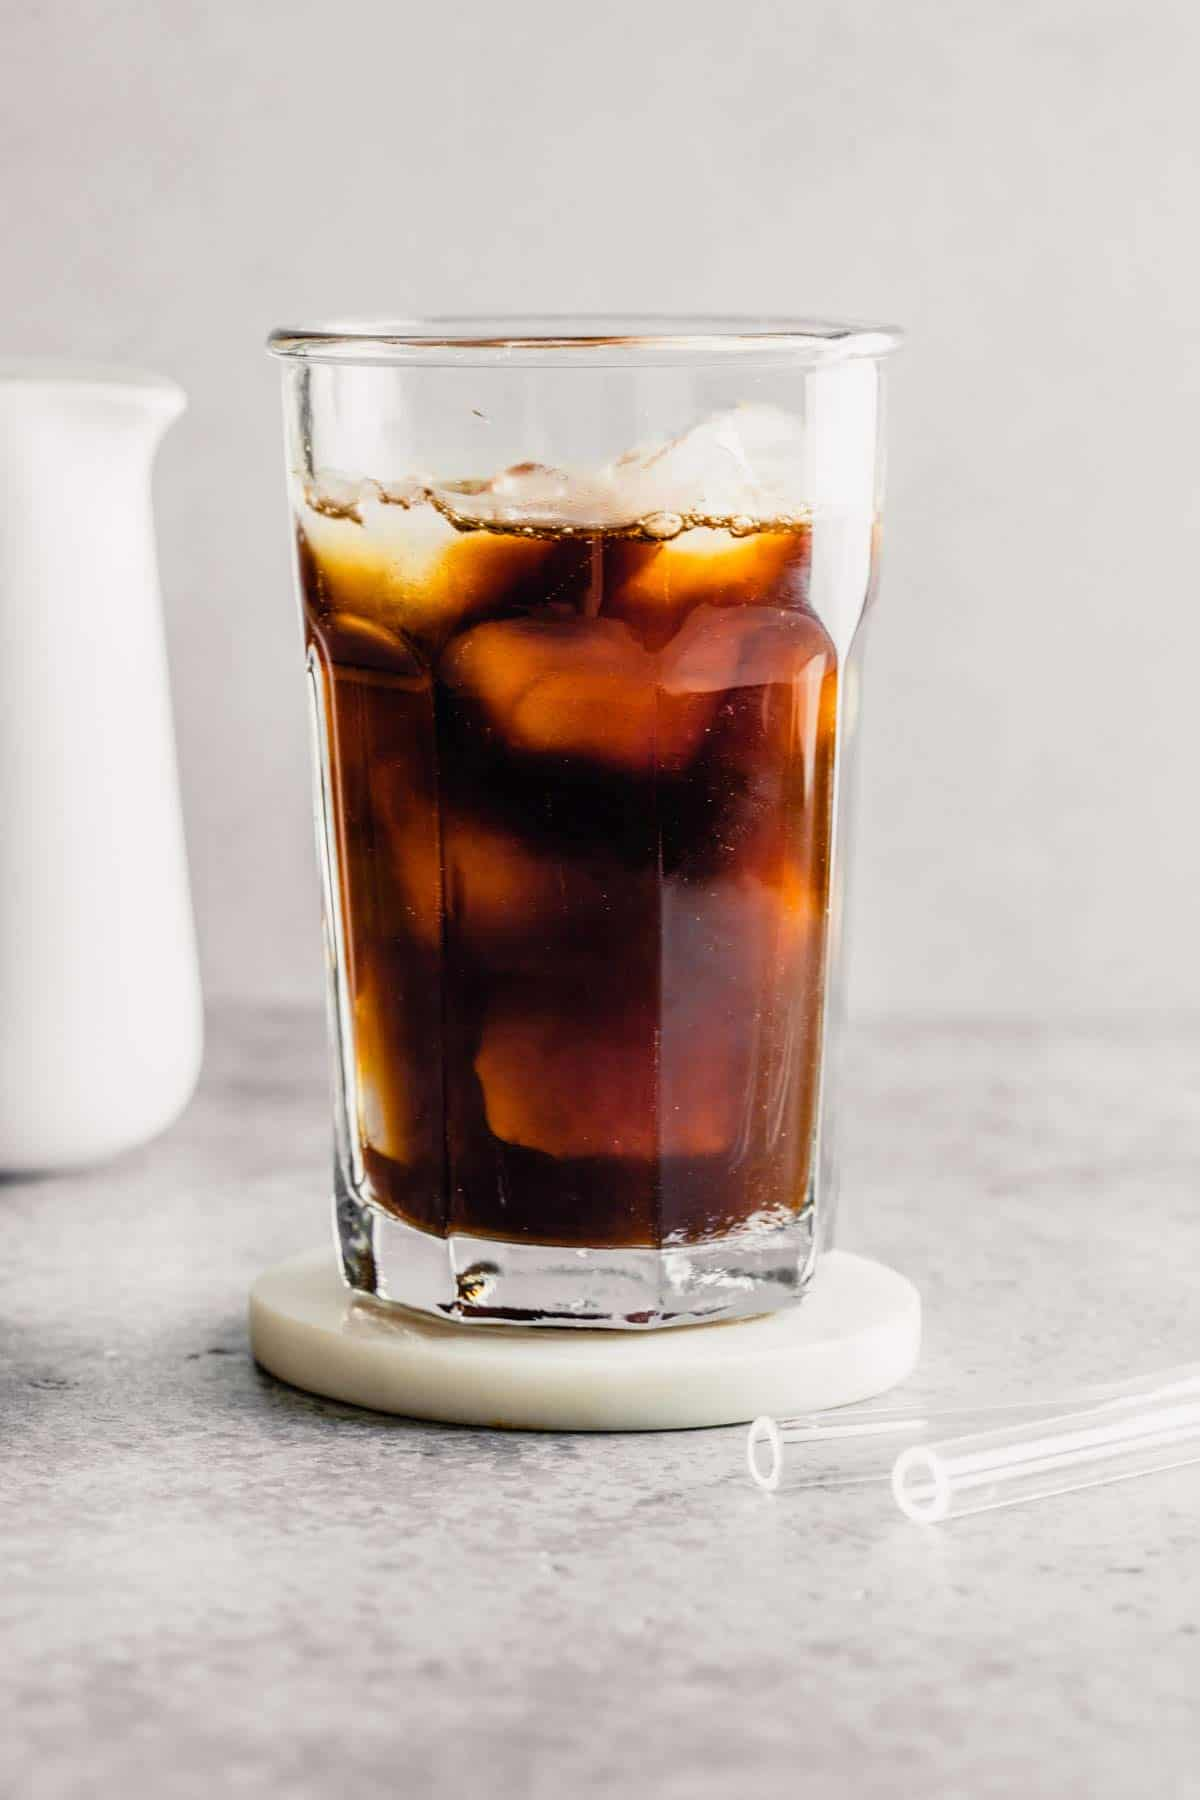 A glass of iced coffee on a coaster with milk in the back left.